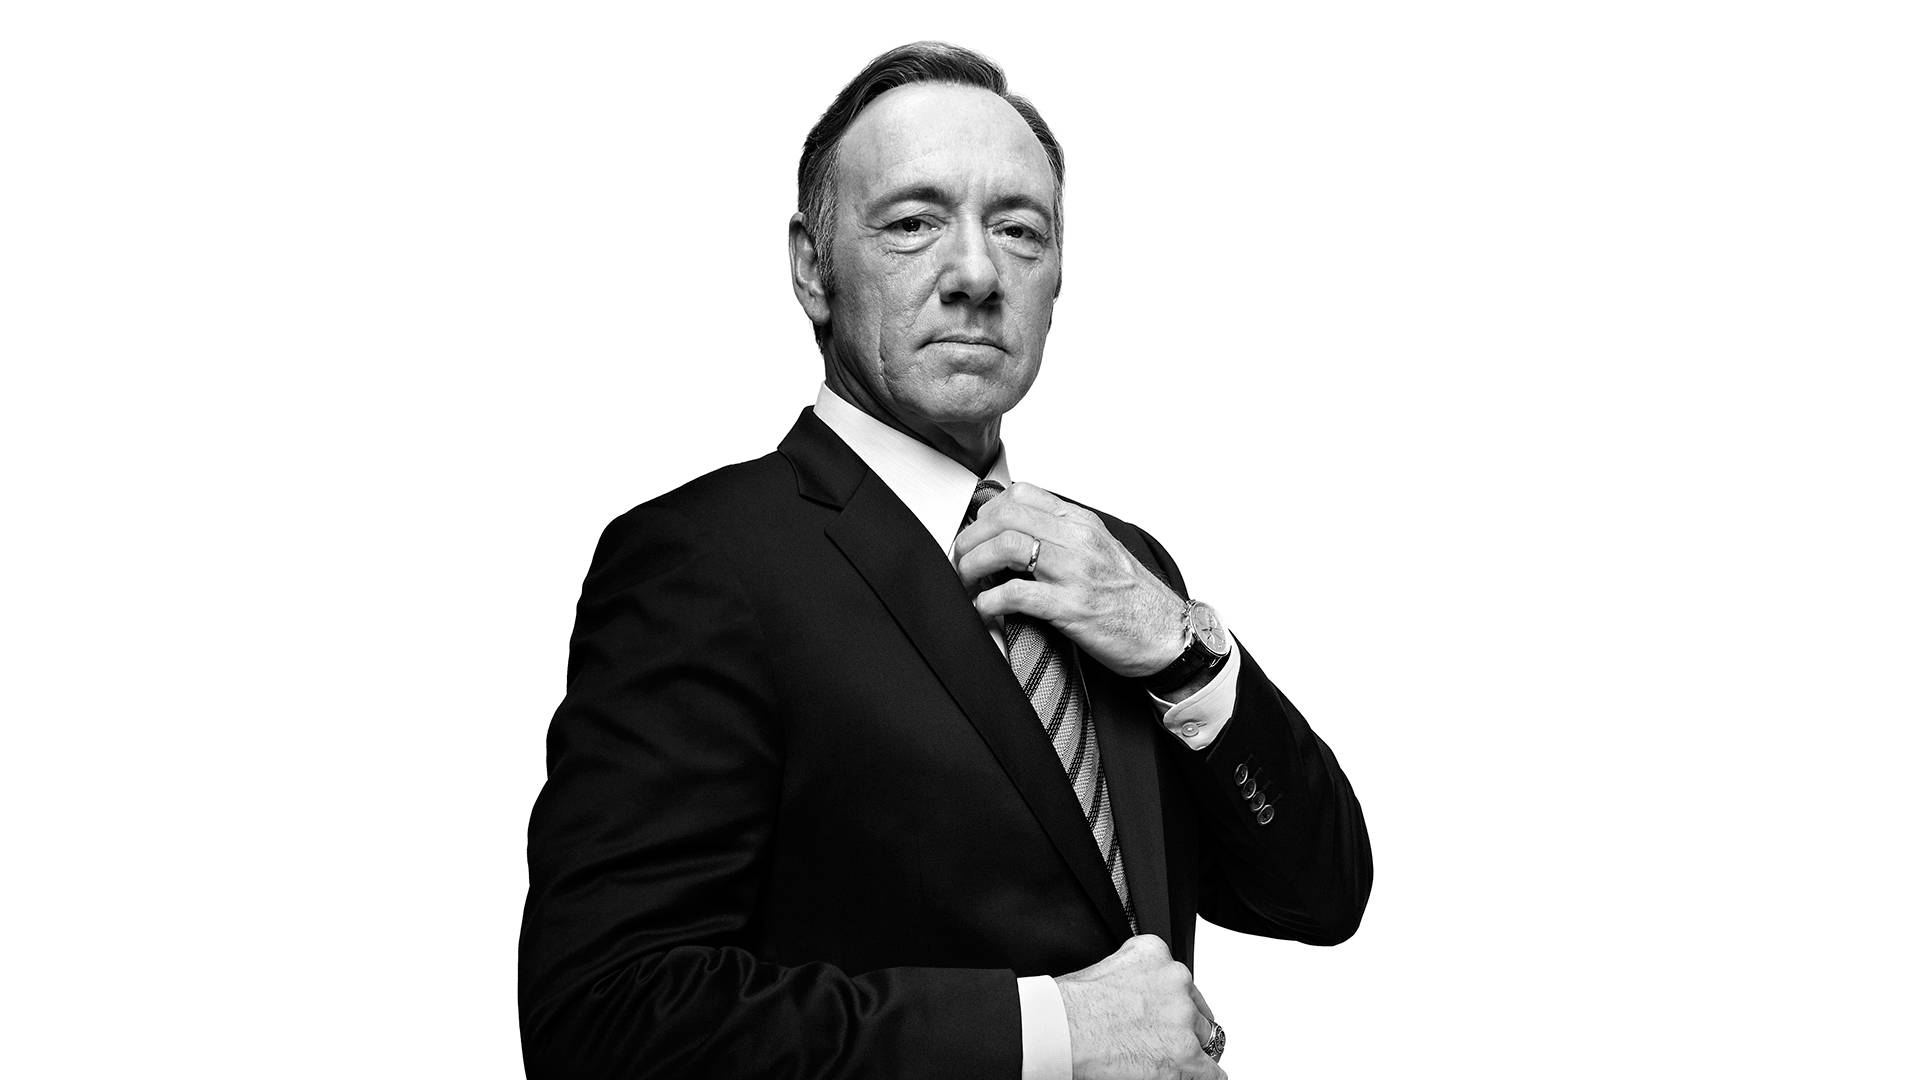 monochrome kevin spacey wallpaper 57567